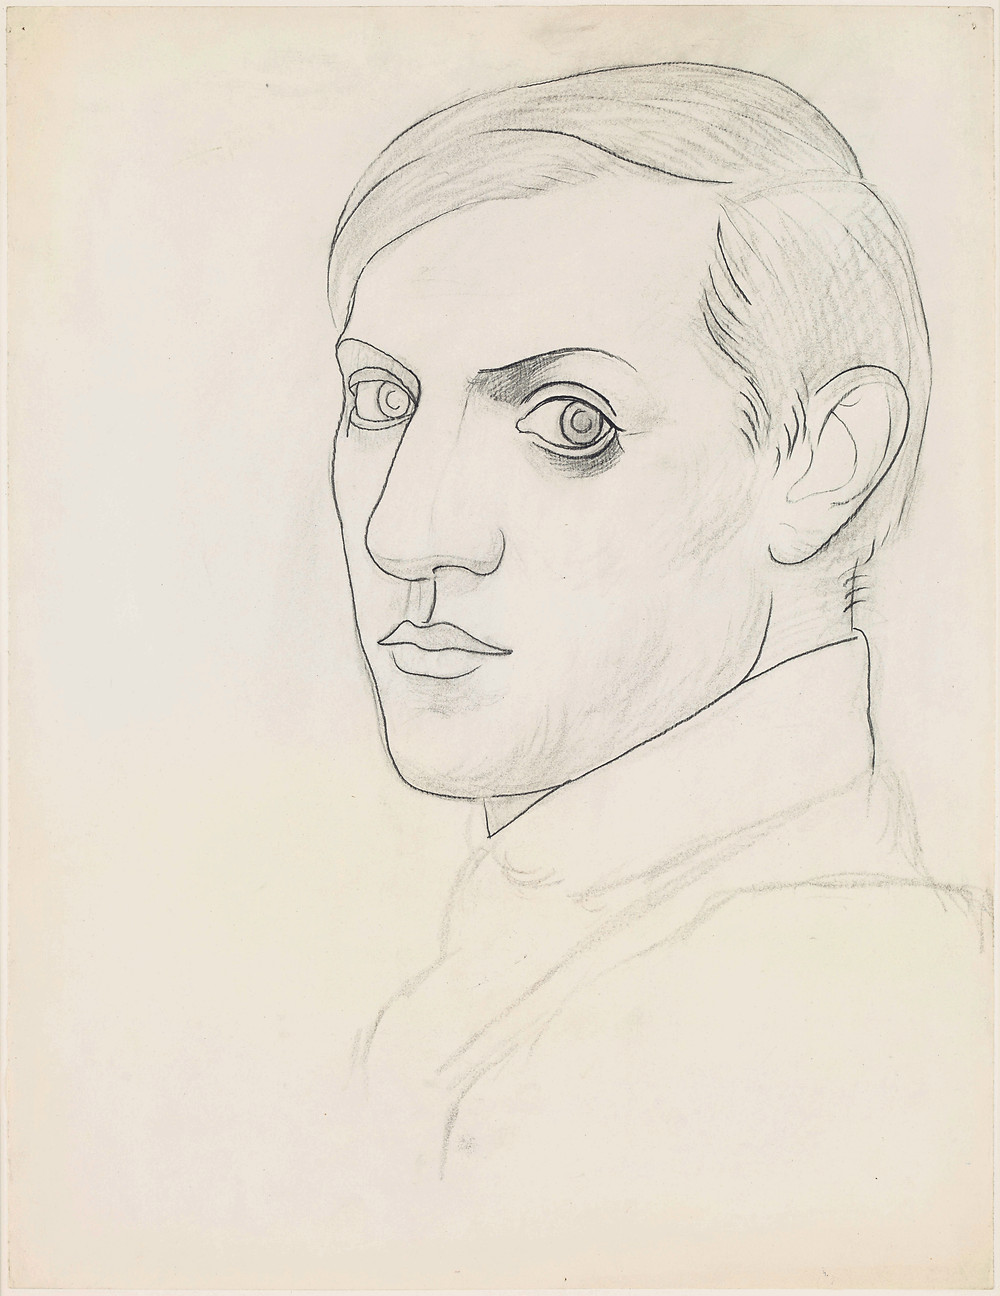 Pablo Picasso, Self-portrait, 1918